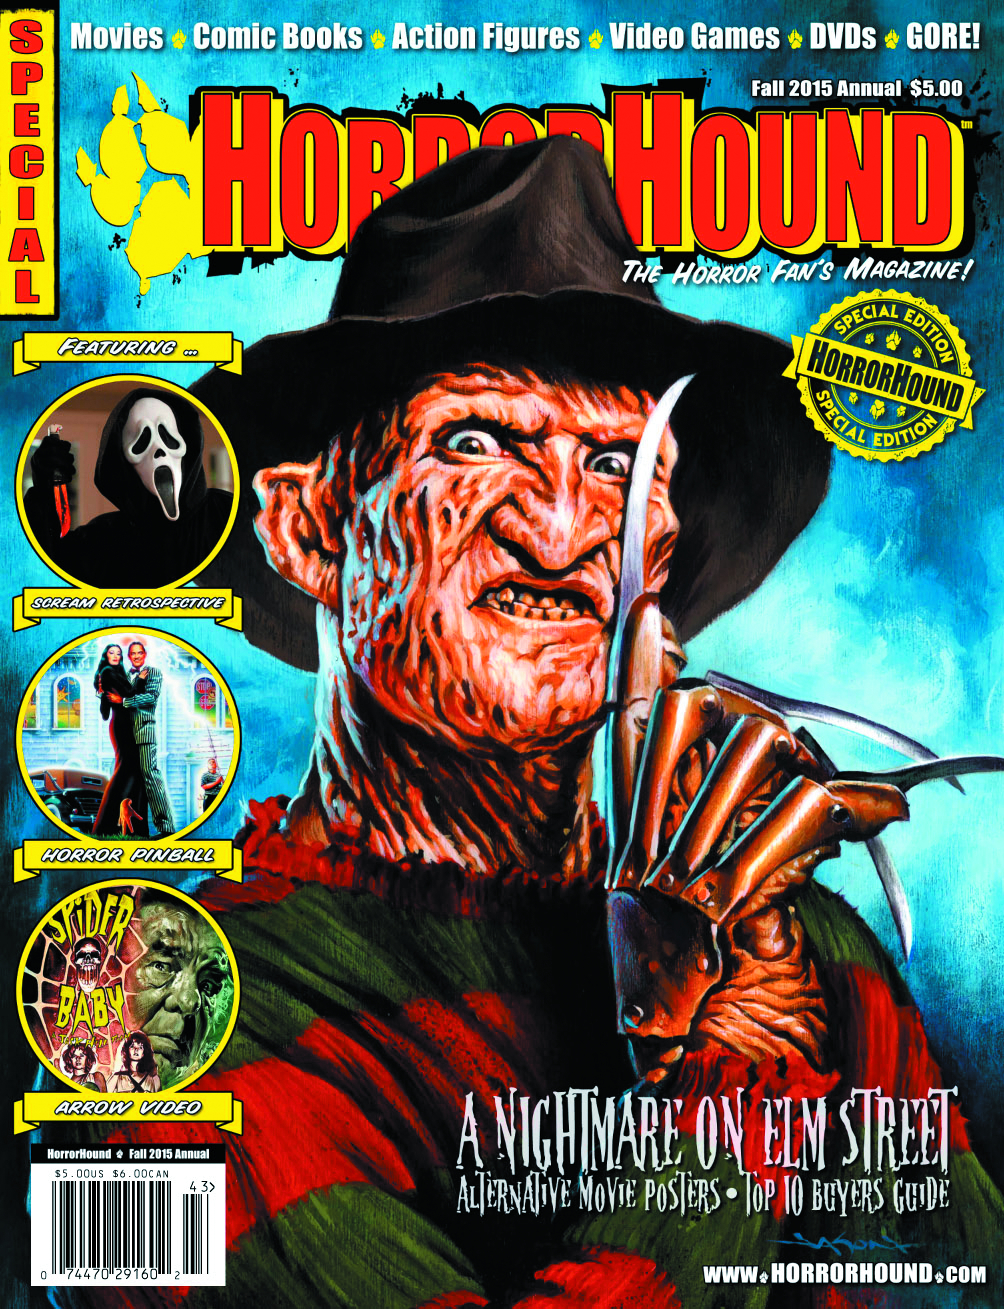 HORRORHOUND 2015 FALL ANNUAL SPECIAL